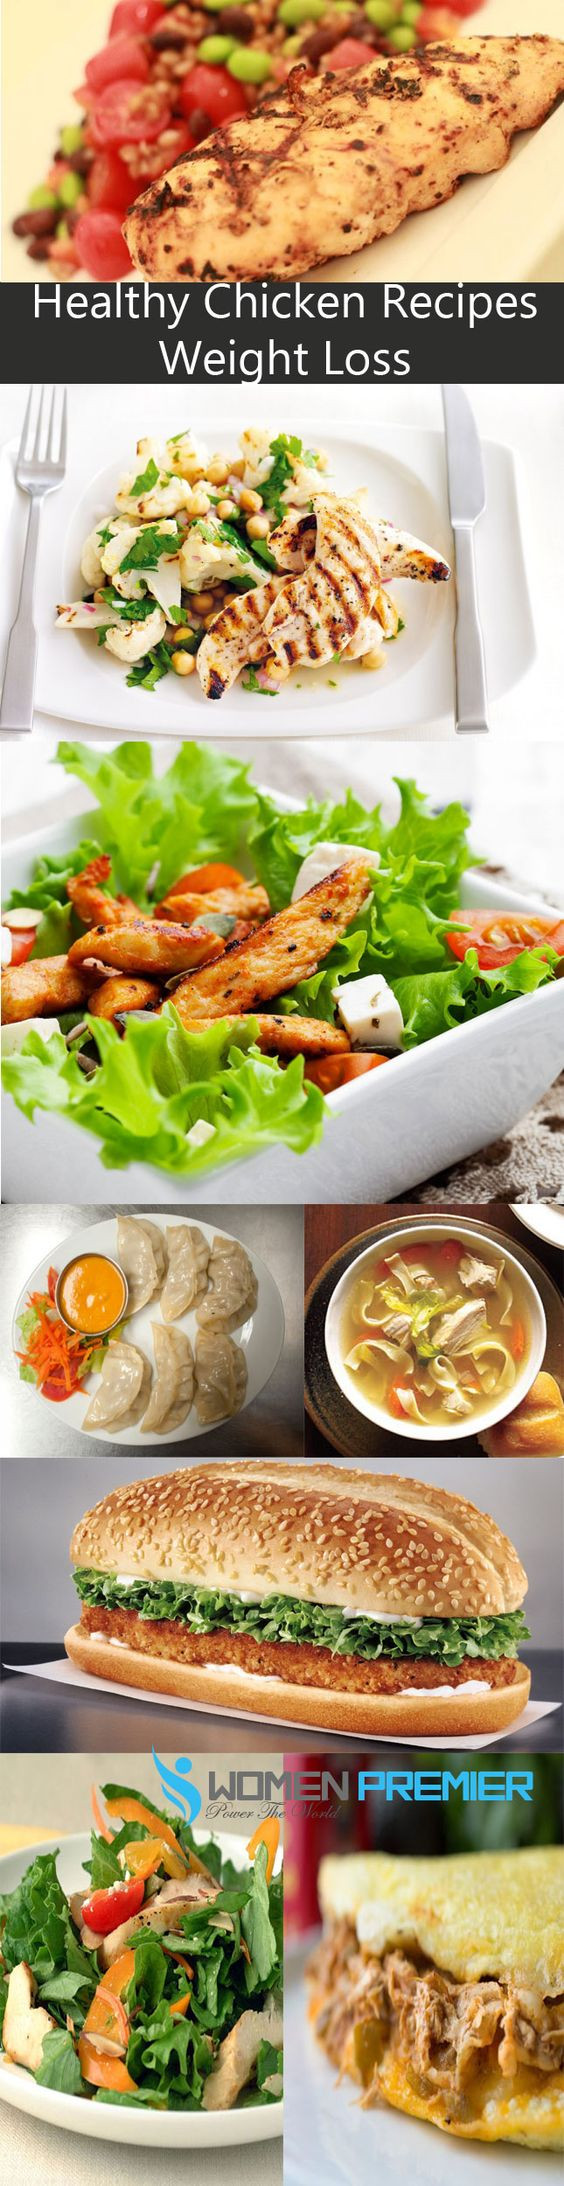 Healthy Chicken Recipes For Weight Loss  Healthy Chicken Recipes For Weight Loss Food